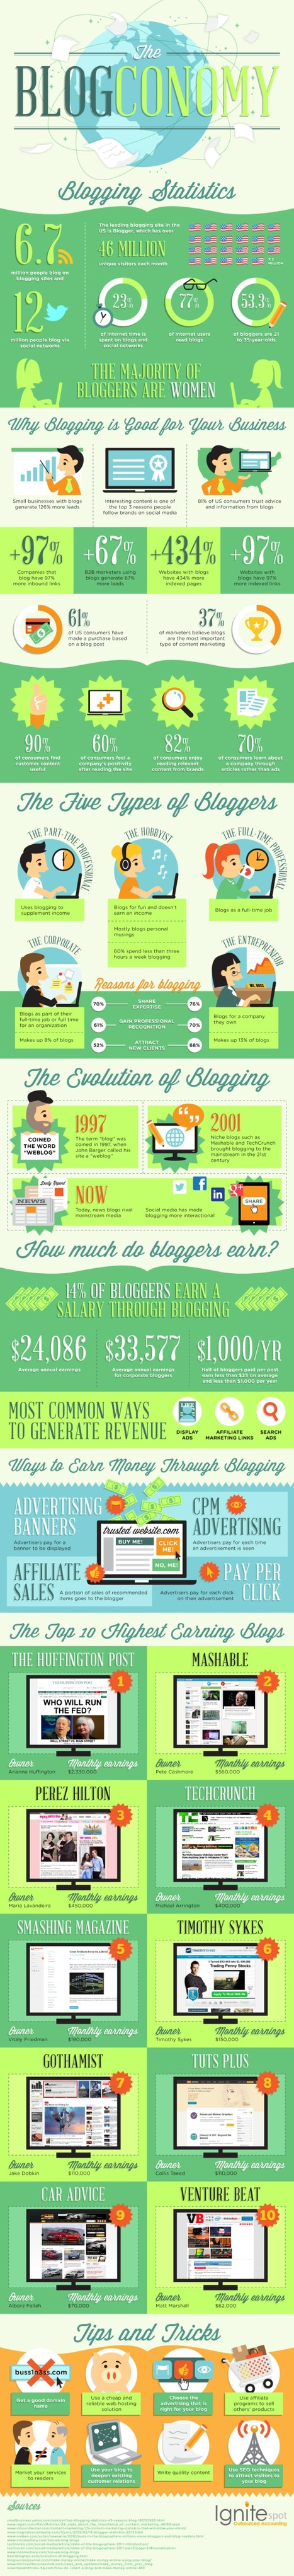 Infographic: The Blogconomy and Blogging Stats | Personal Branding and Professional networks - @TOOLS_BOX_INC @TOOLS_BOX_EUR @TOOLS_BOX_DEV @TOOLS_BOX_FR @TOOLS_BOX_FR @P_TREBAUL @Best_OfTweets | Scoop.it